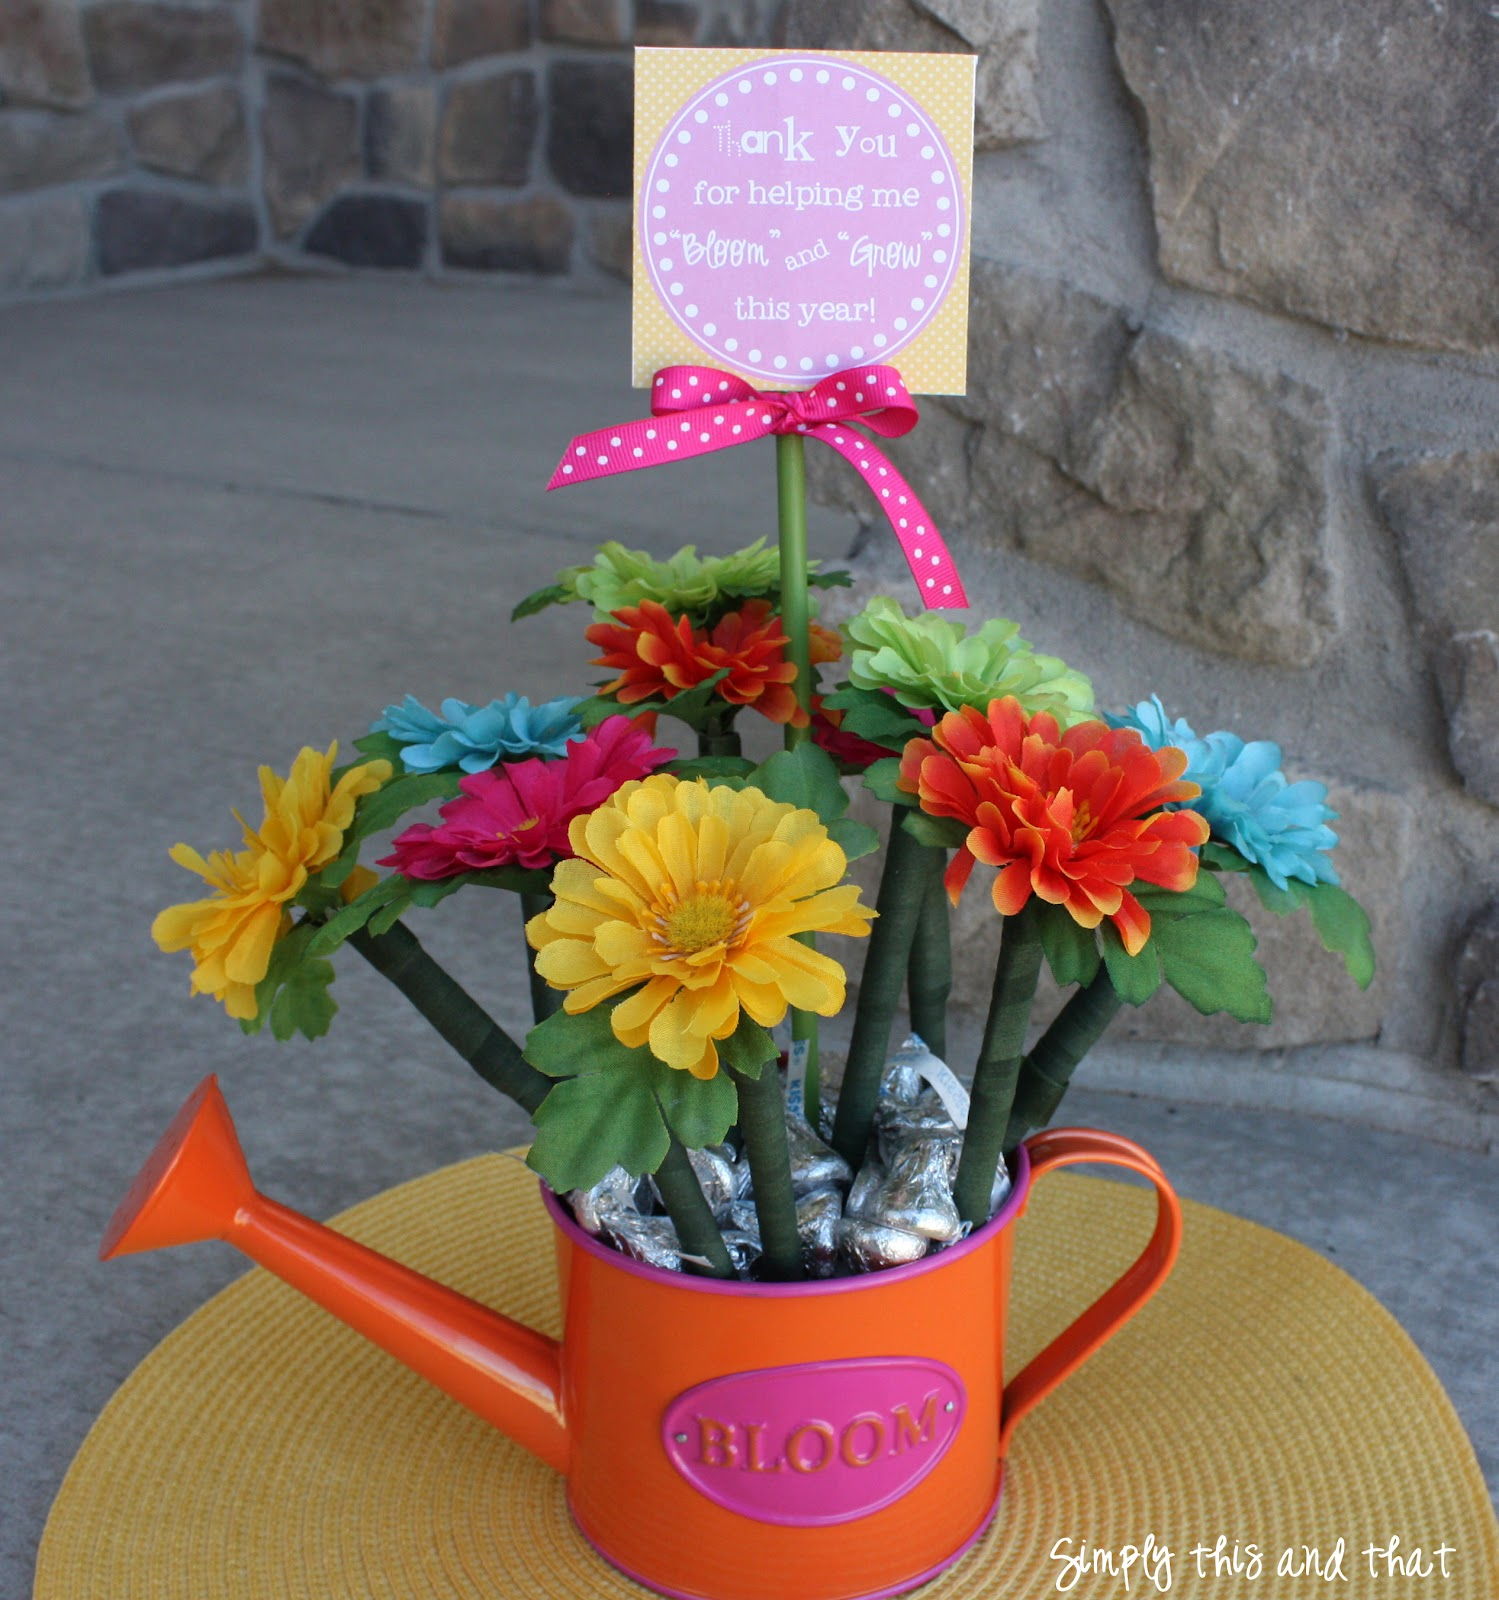 image regarding Thanks for Helping Me Bloom Printable identify Basically This and that: Flower Pen Planter and Printable Tag